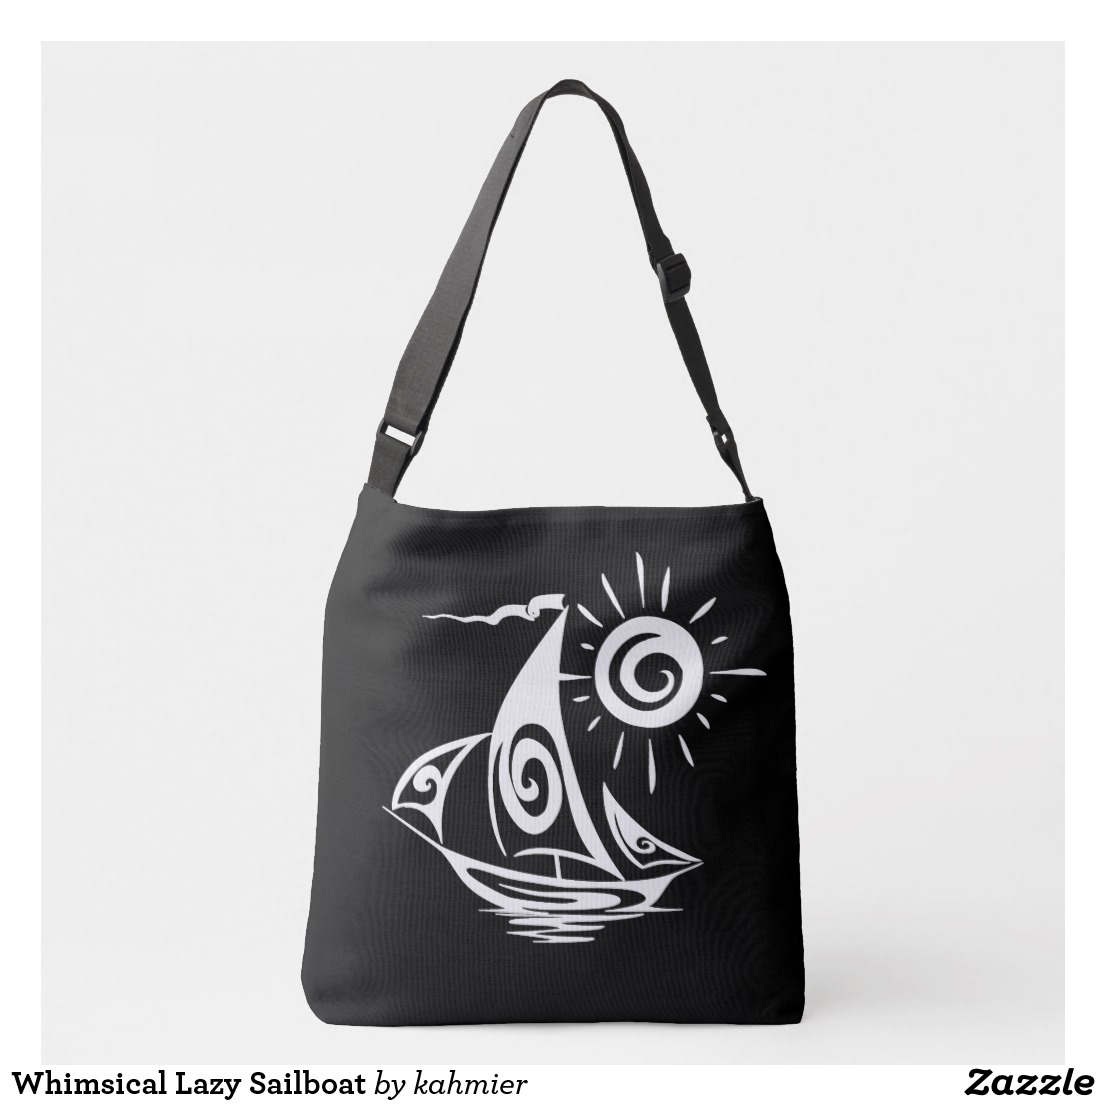 Whimsical Lazy Sailboat Crossbody Bag